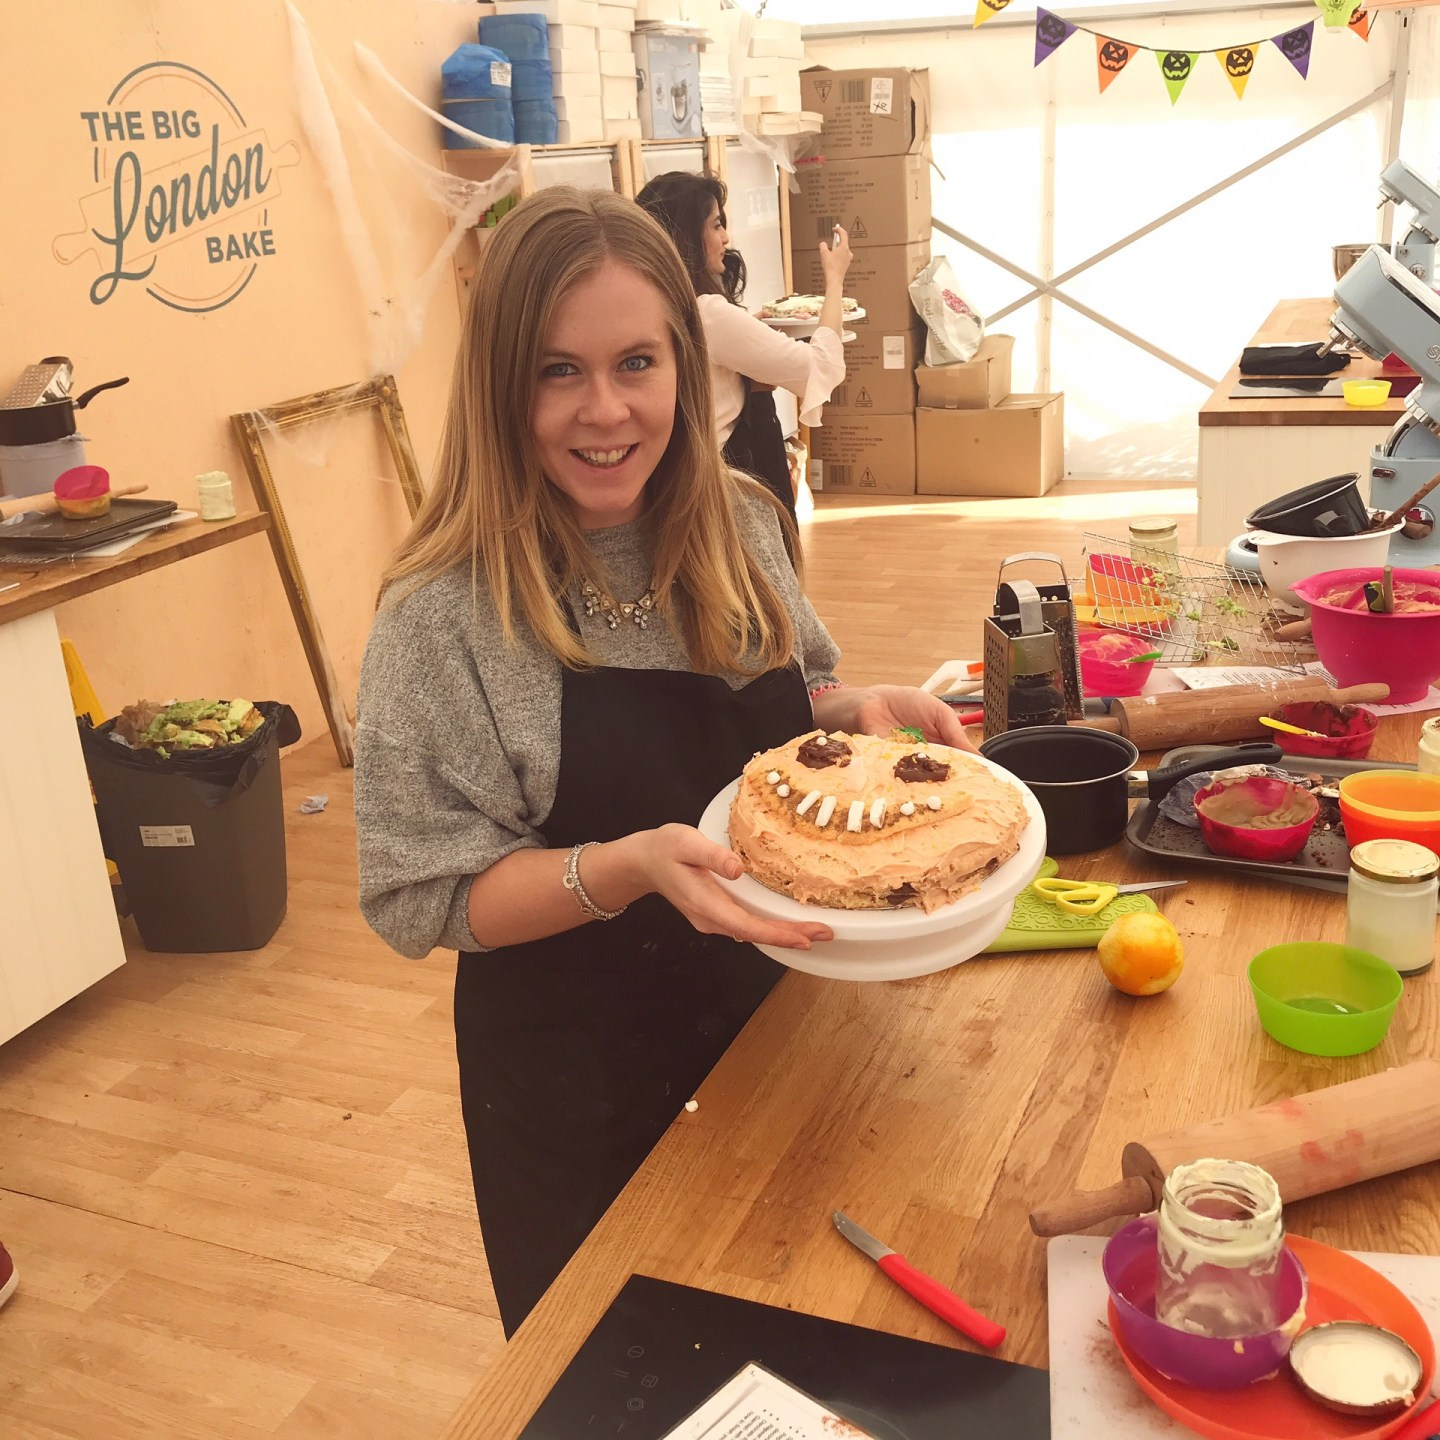 Live out your GBBO fantasy at The Big London Bake, Tooting